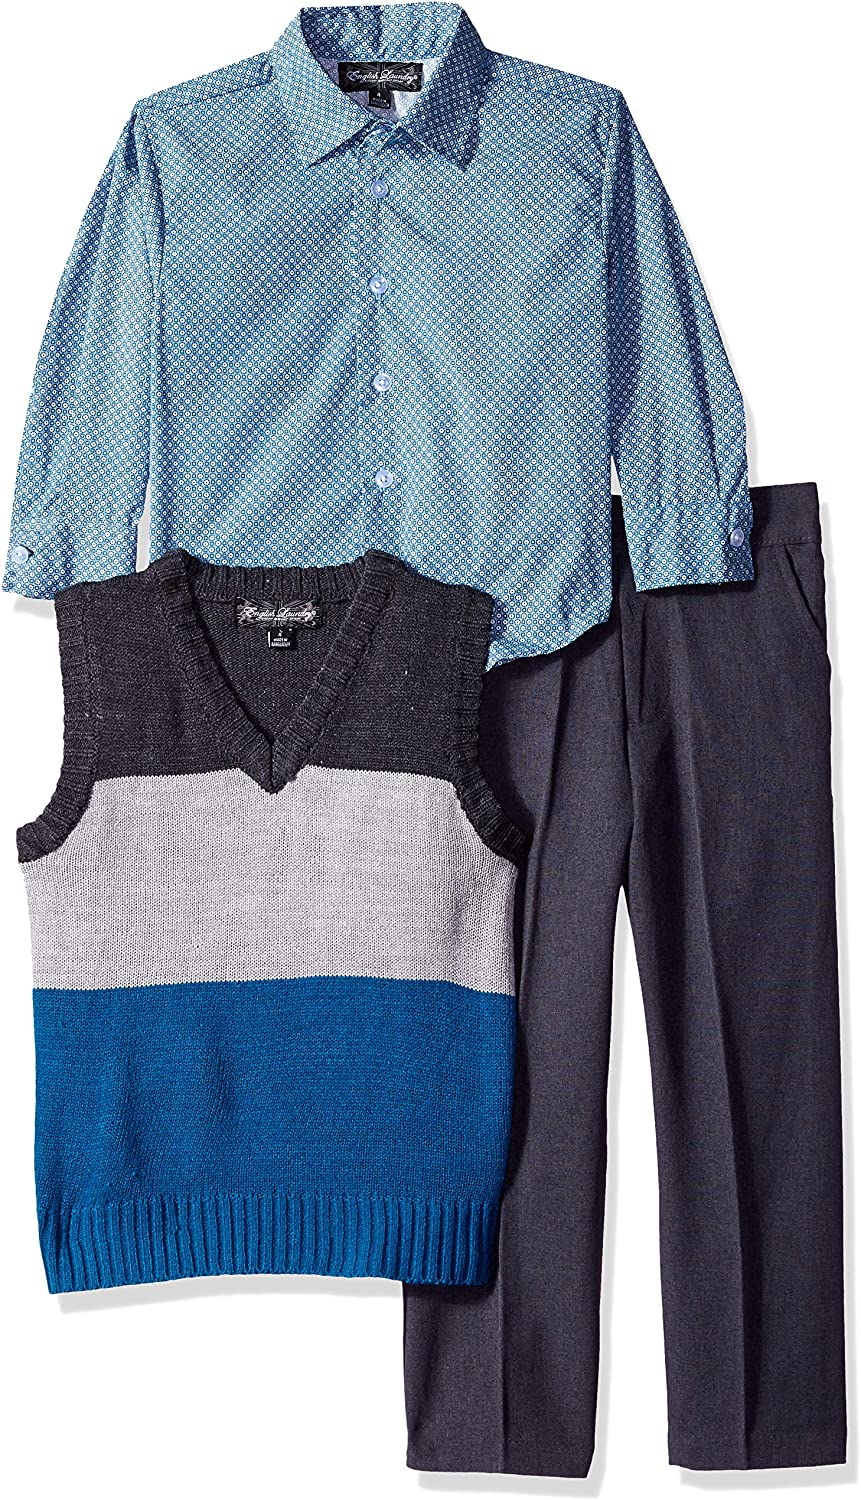 English Laundry Boys' Little 3 Piece Wide Stripe Sweater Vest, Sport Shirt and Pant Set